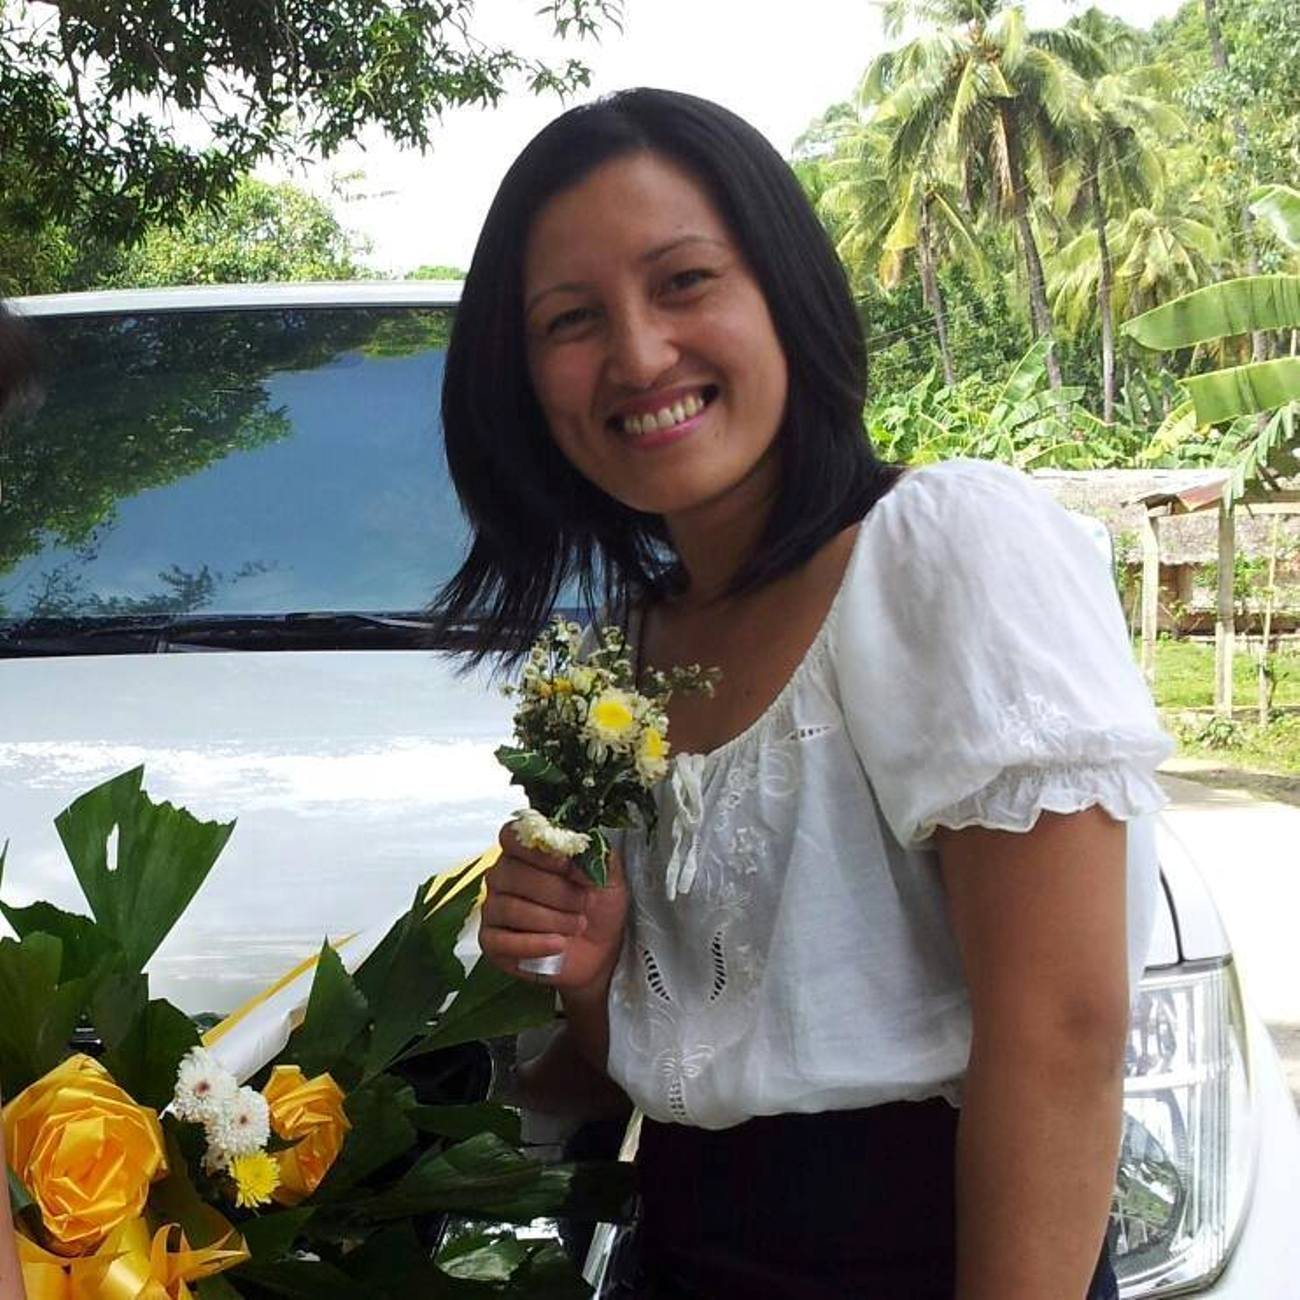 Warrington children's nanny found beheaded in Philippines - bosses suspended from Warrington Hospital